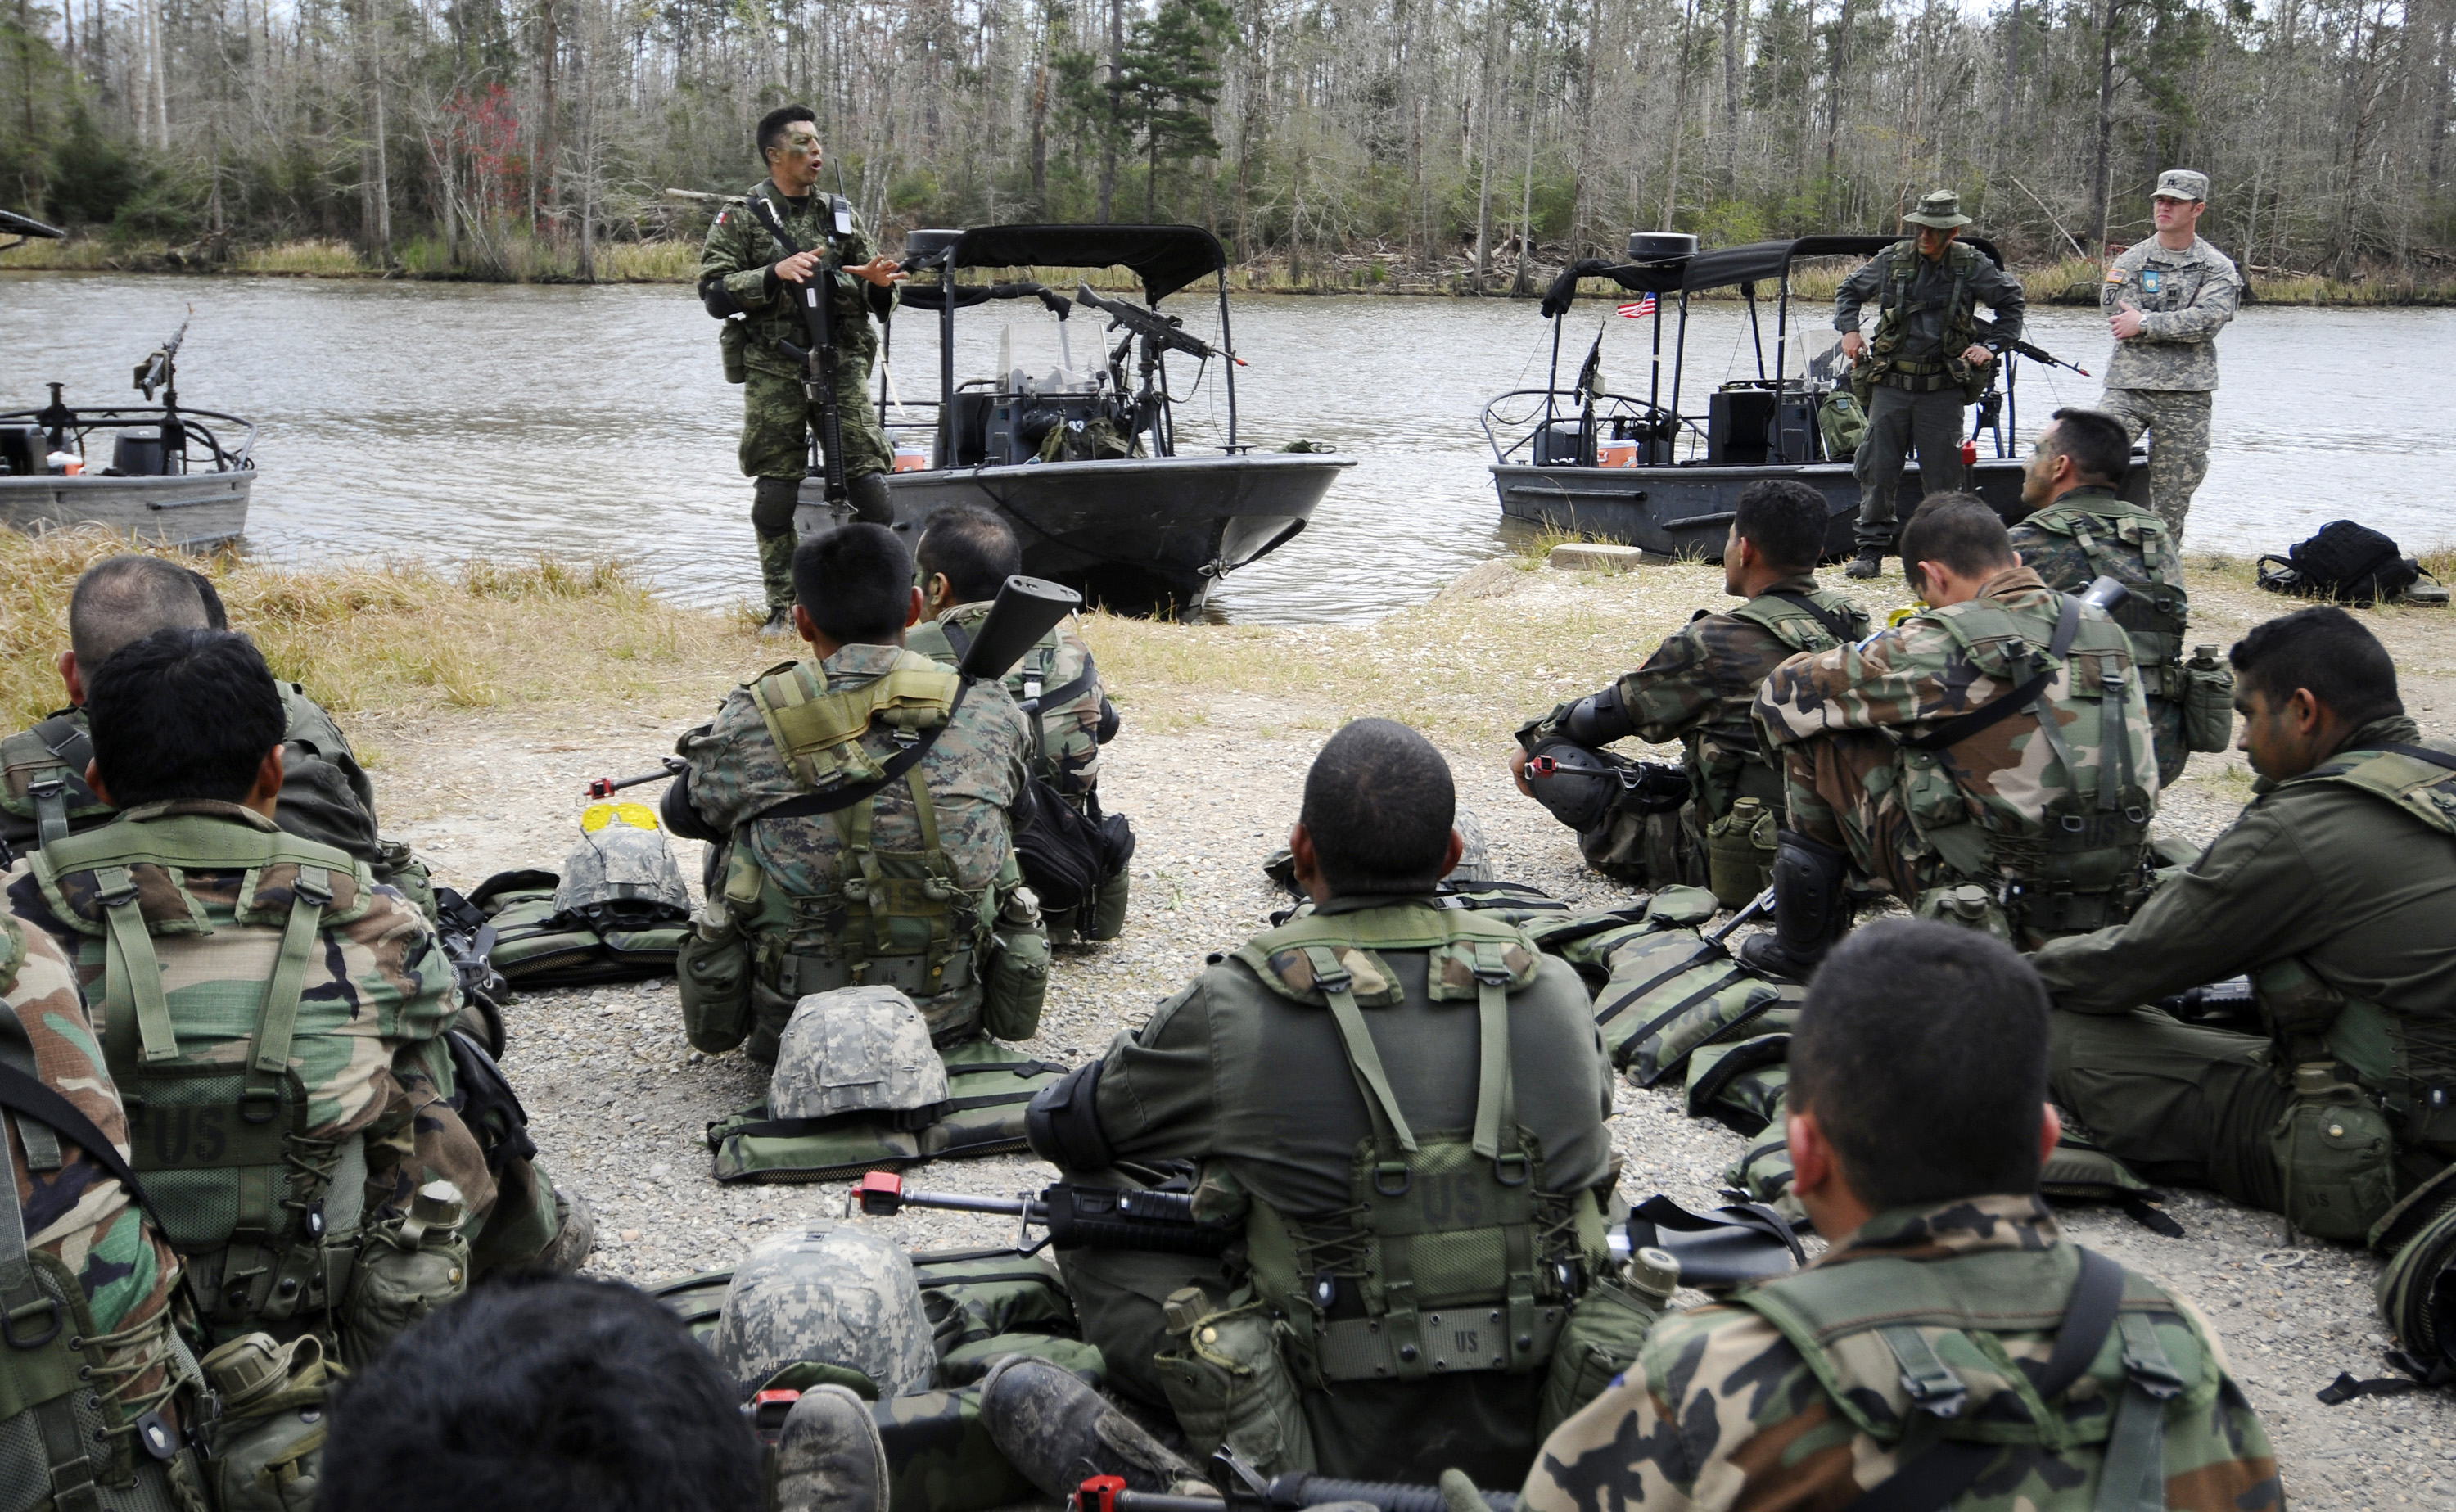 A guest instructor debriefs students from the Western Hemisphere Institute for Security Cooperation and Naval Small Craft Instruction and Technical Training School after a field training exercise. (U.S. Navy photo)